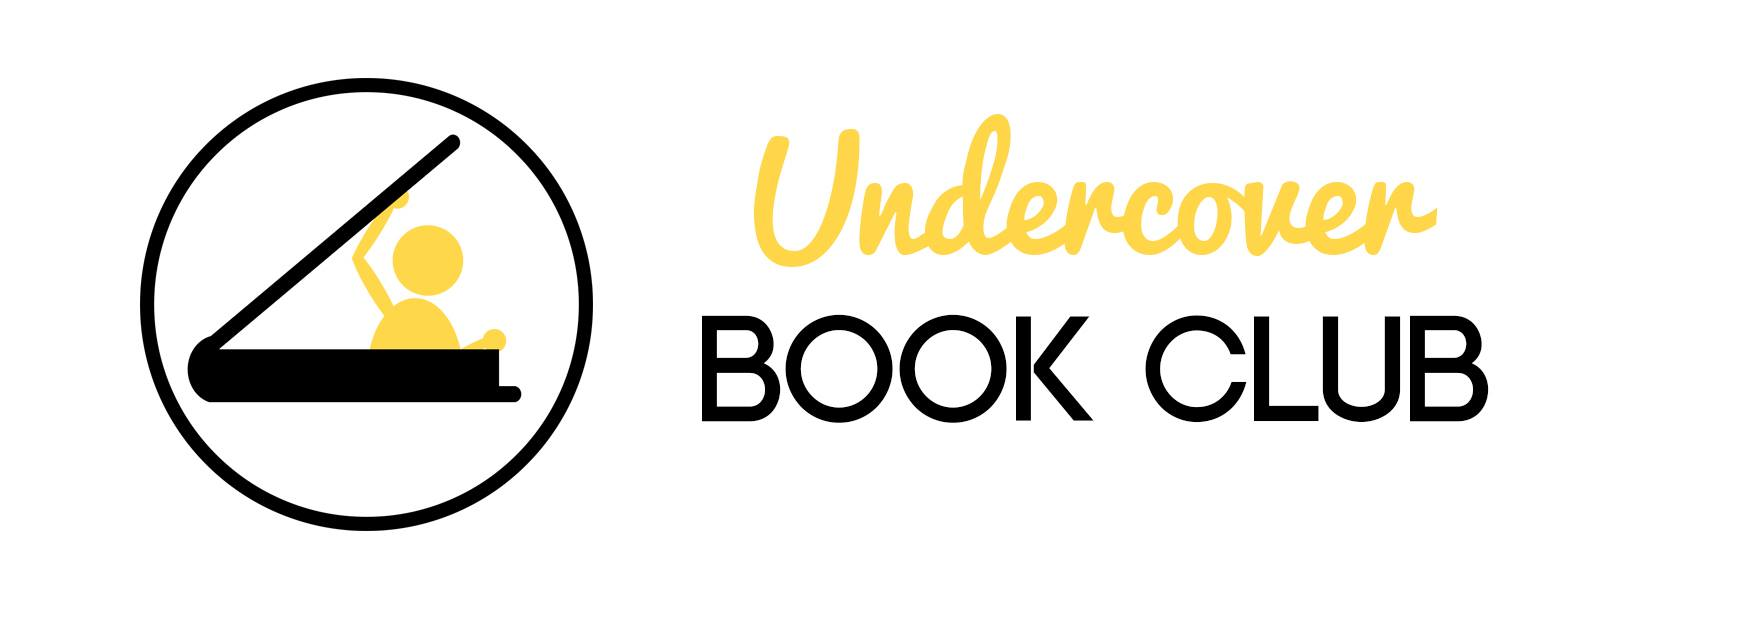 Do: Undercover Book Club